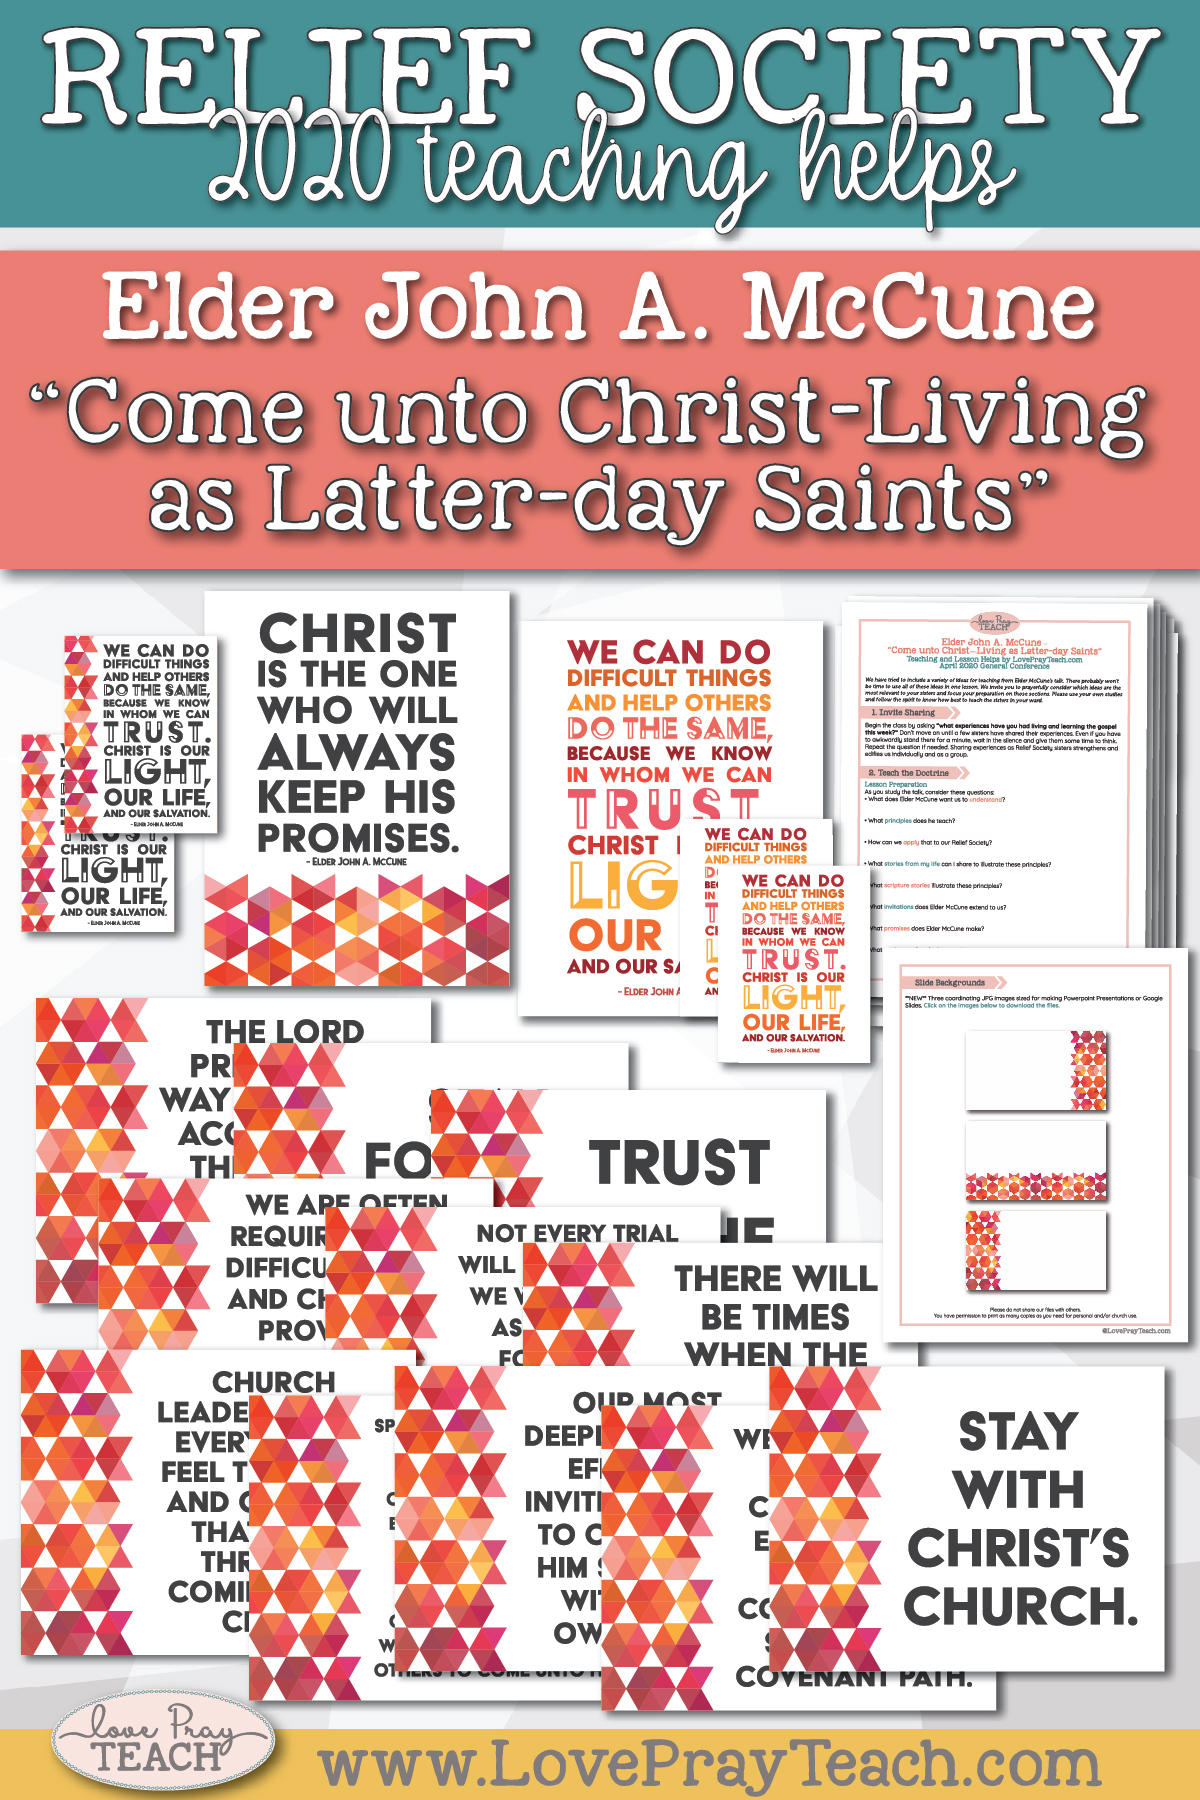 "April 2020 General Conference: Elder John A. McCune - ""Come unto Christ-Living as Latter-day Saints"" Printable Lesson Helps and Handouts for Latter-day Saints"